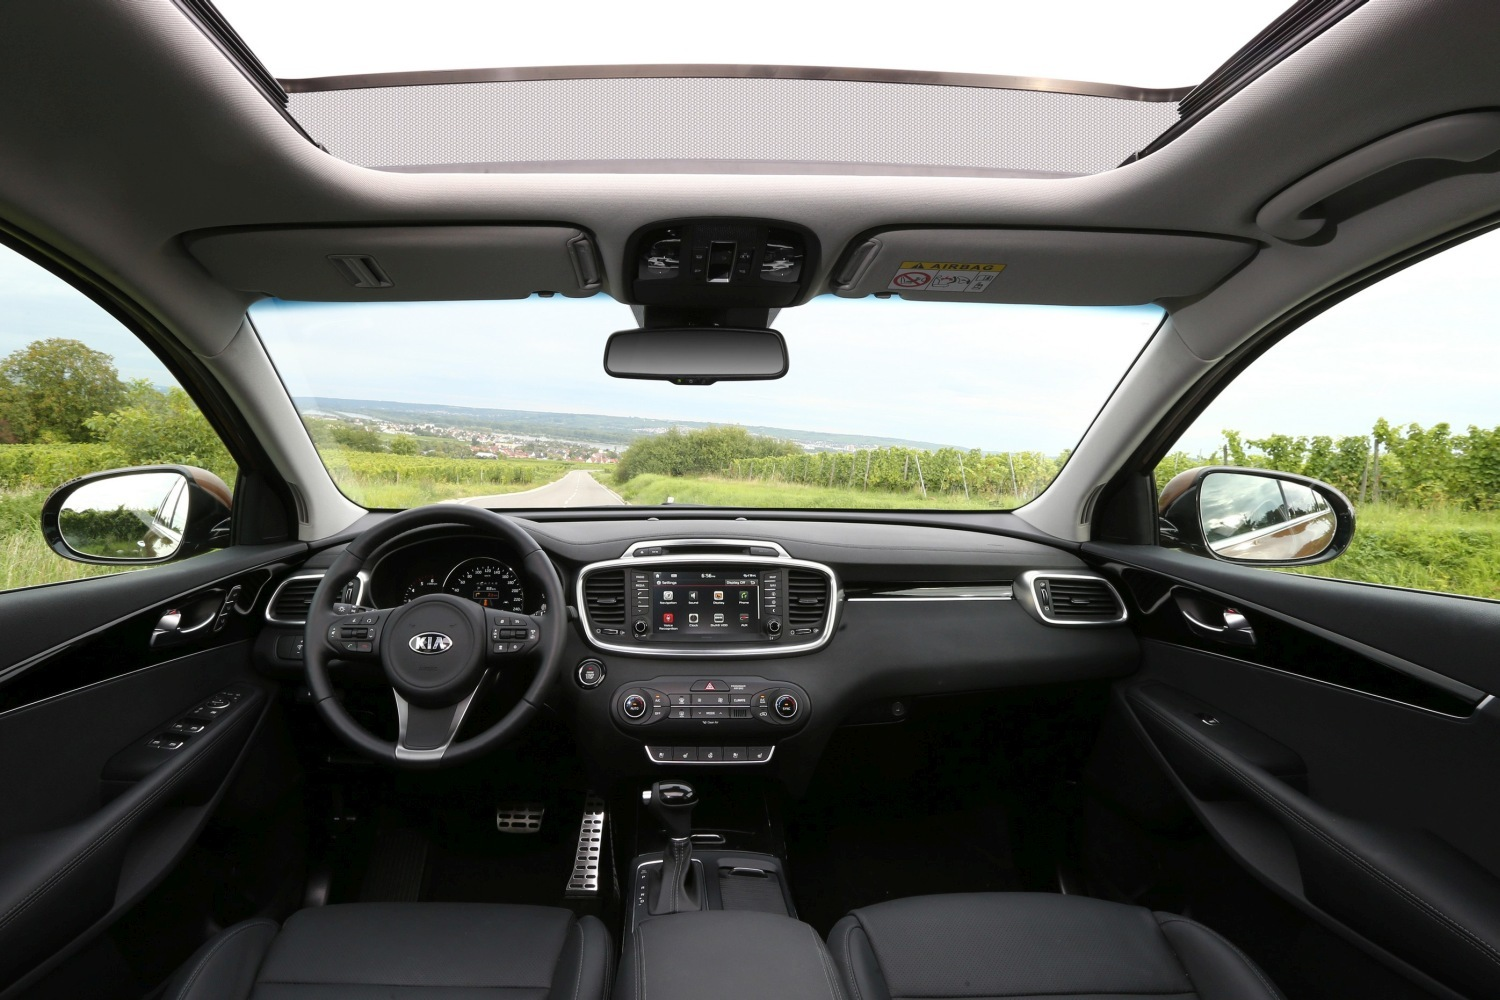 2018 Kia Sorento interior changes